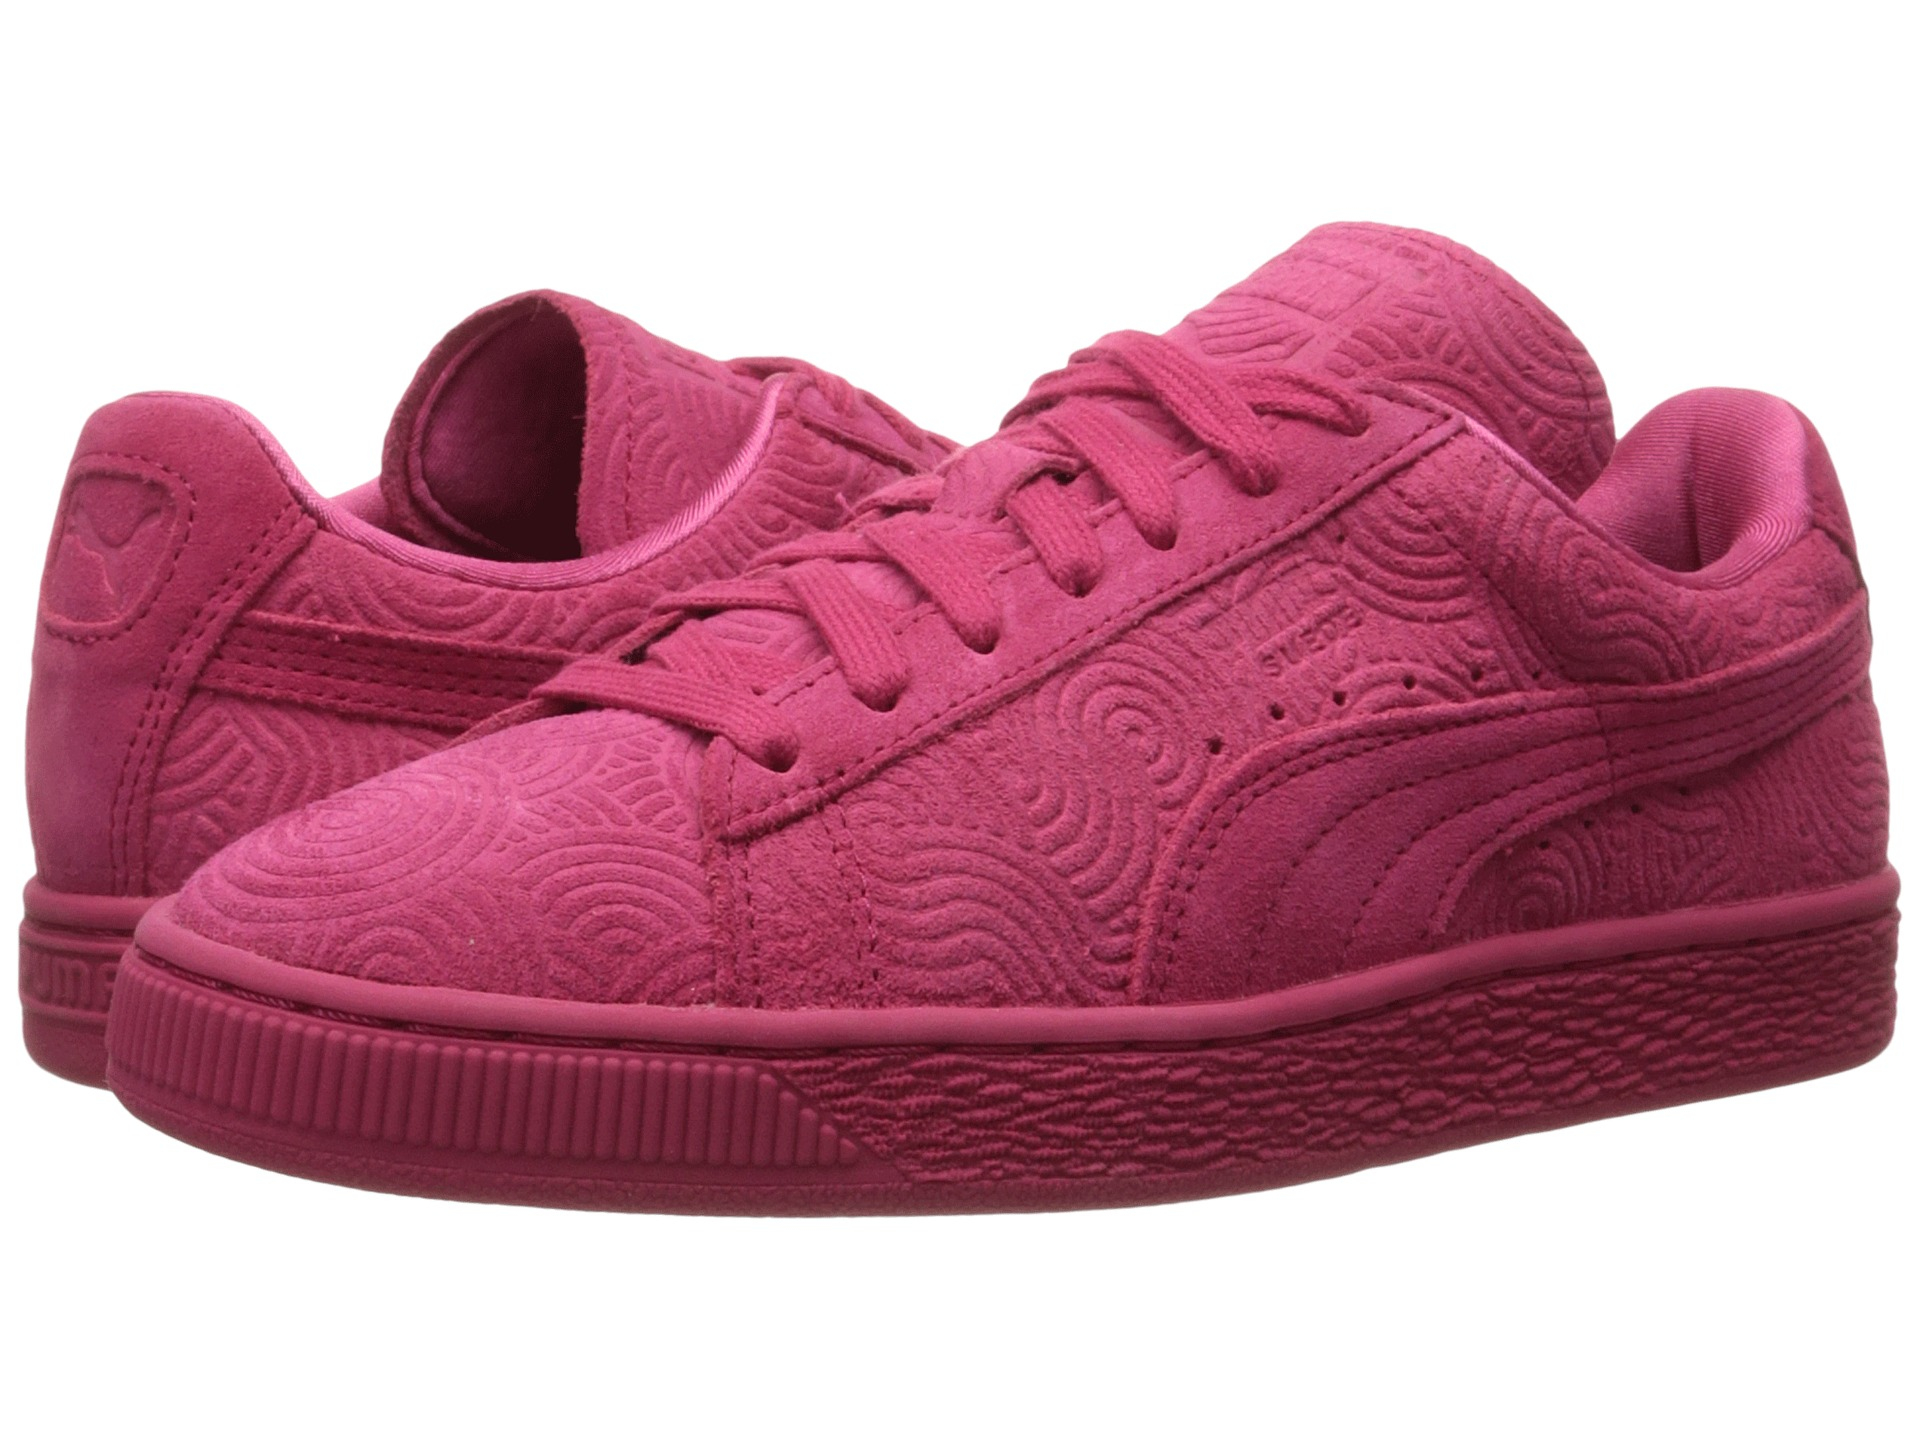 9693ffc80a1ba9 Lyst - PUMA Suede Classic + Colored in Pink